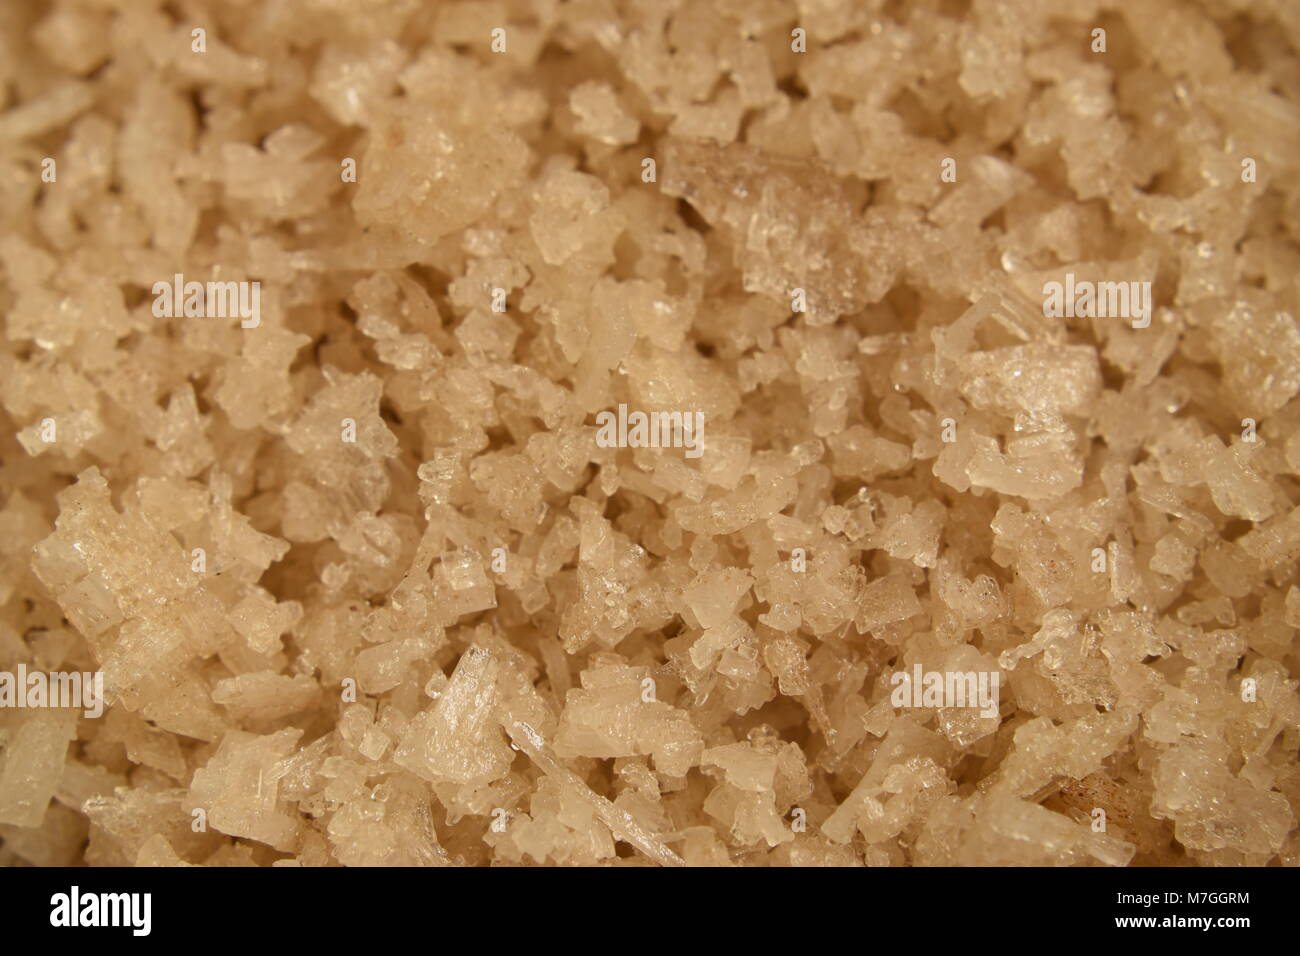 Closeup background of brown salt crystals in a heap. - Stock Image